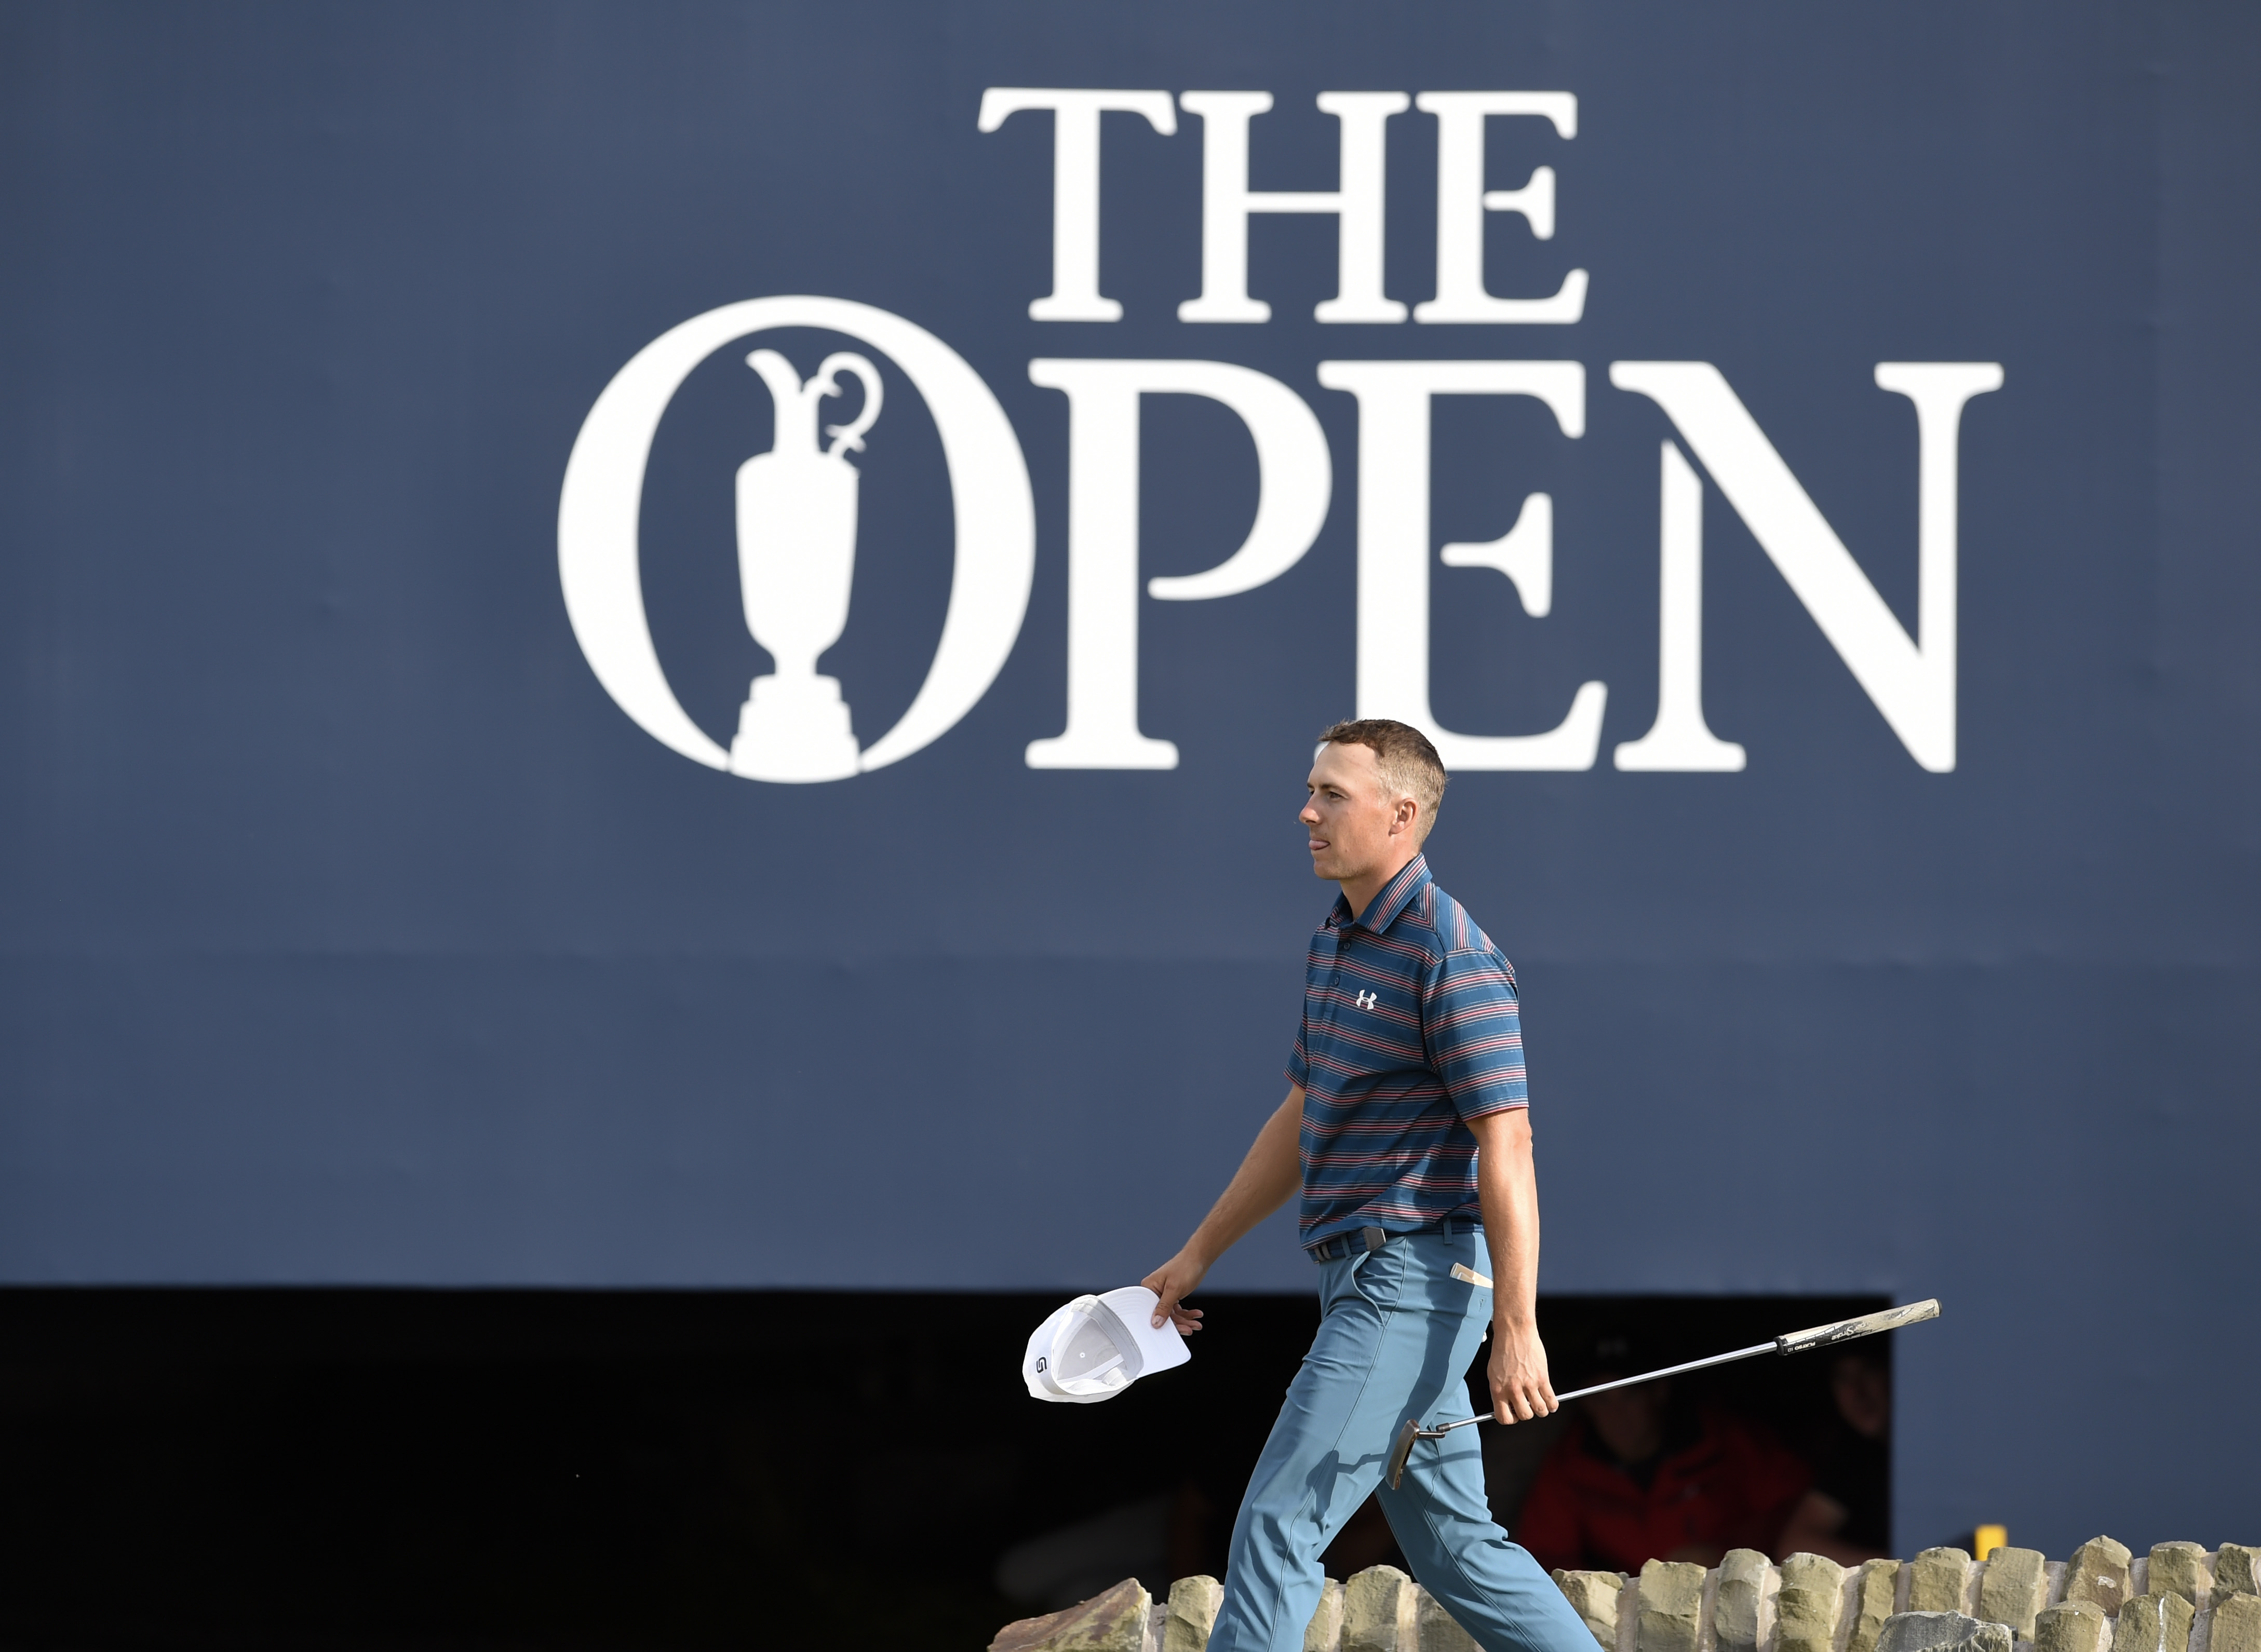 Jul 22, 2018; Carnoustie, Angus, SCT; Jordan Spieth walks to the 18th hole during the final round of The Open Championship golf tournament at Carnoustie Golf Links. Mandatory Credit: Ian Rutherford-USA TODAY Sports